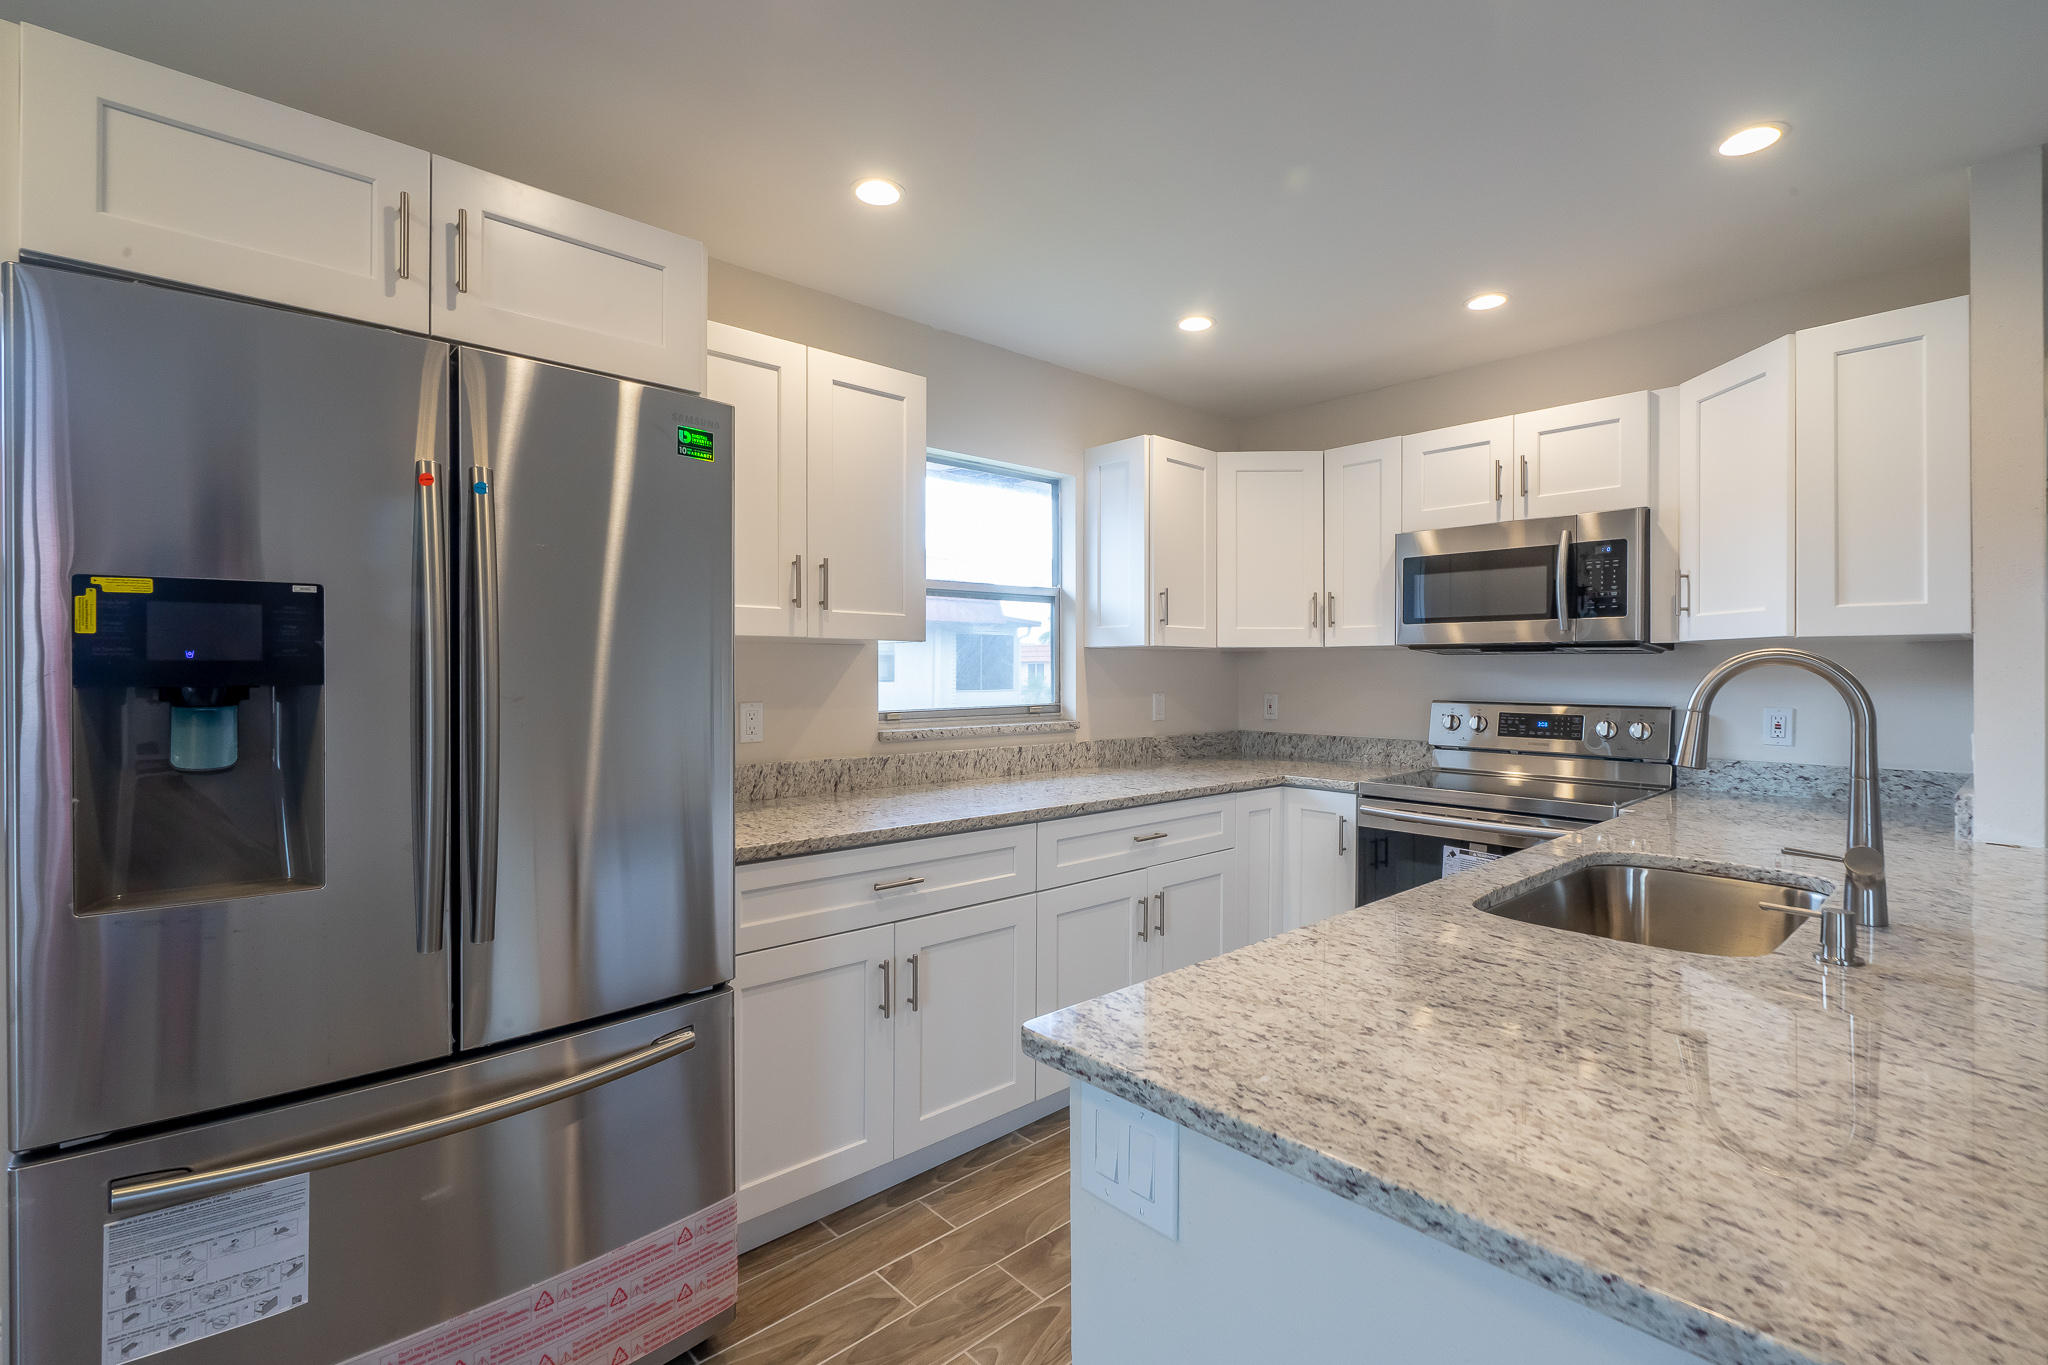 Home for sale in KINGS POINT SAXONY CONDOS Delray Beach Florida